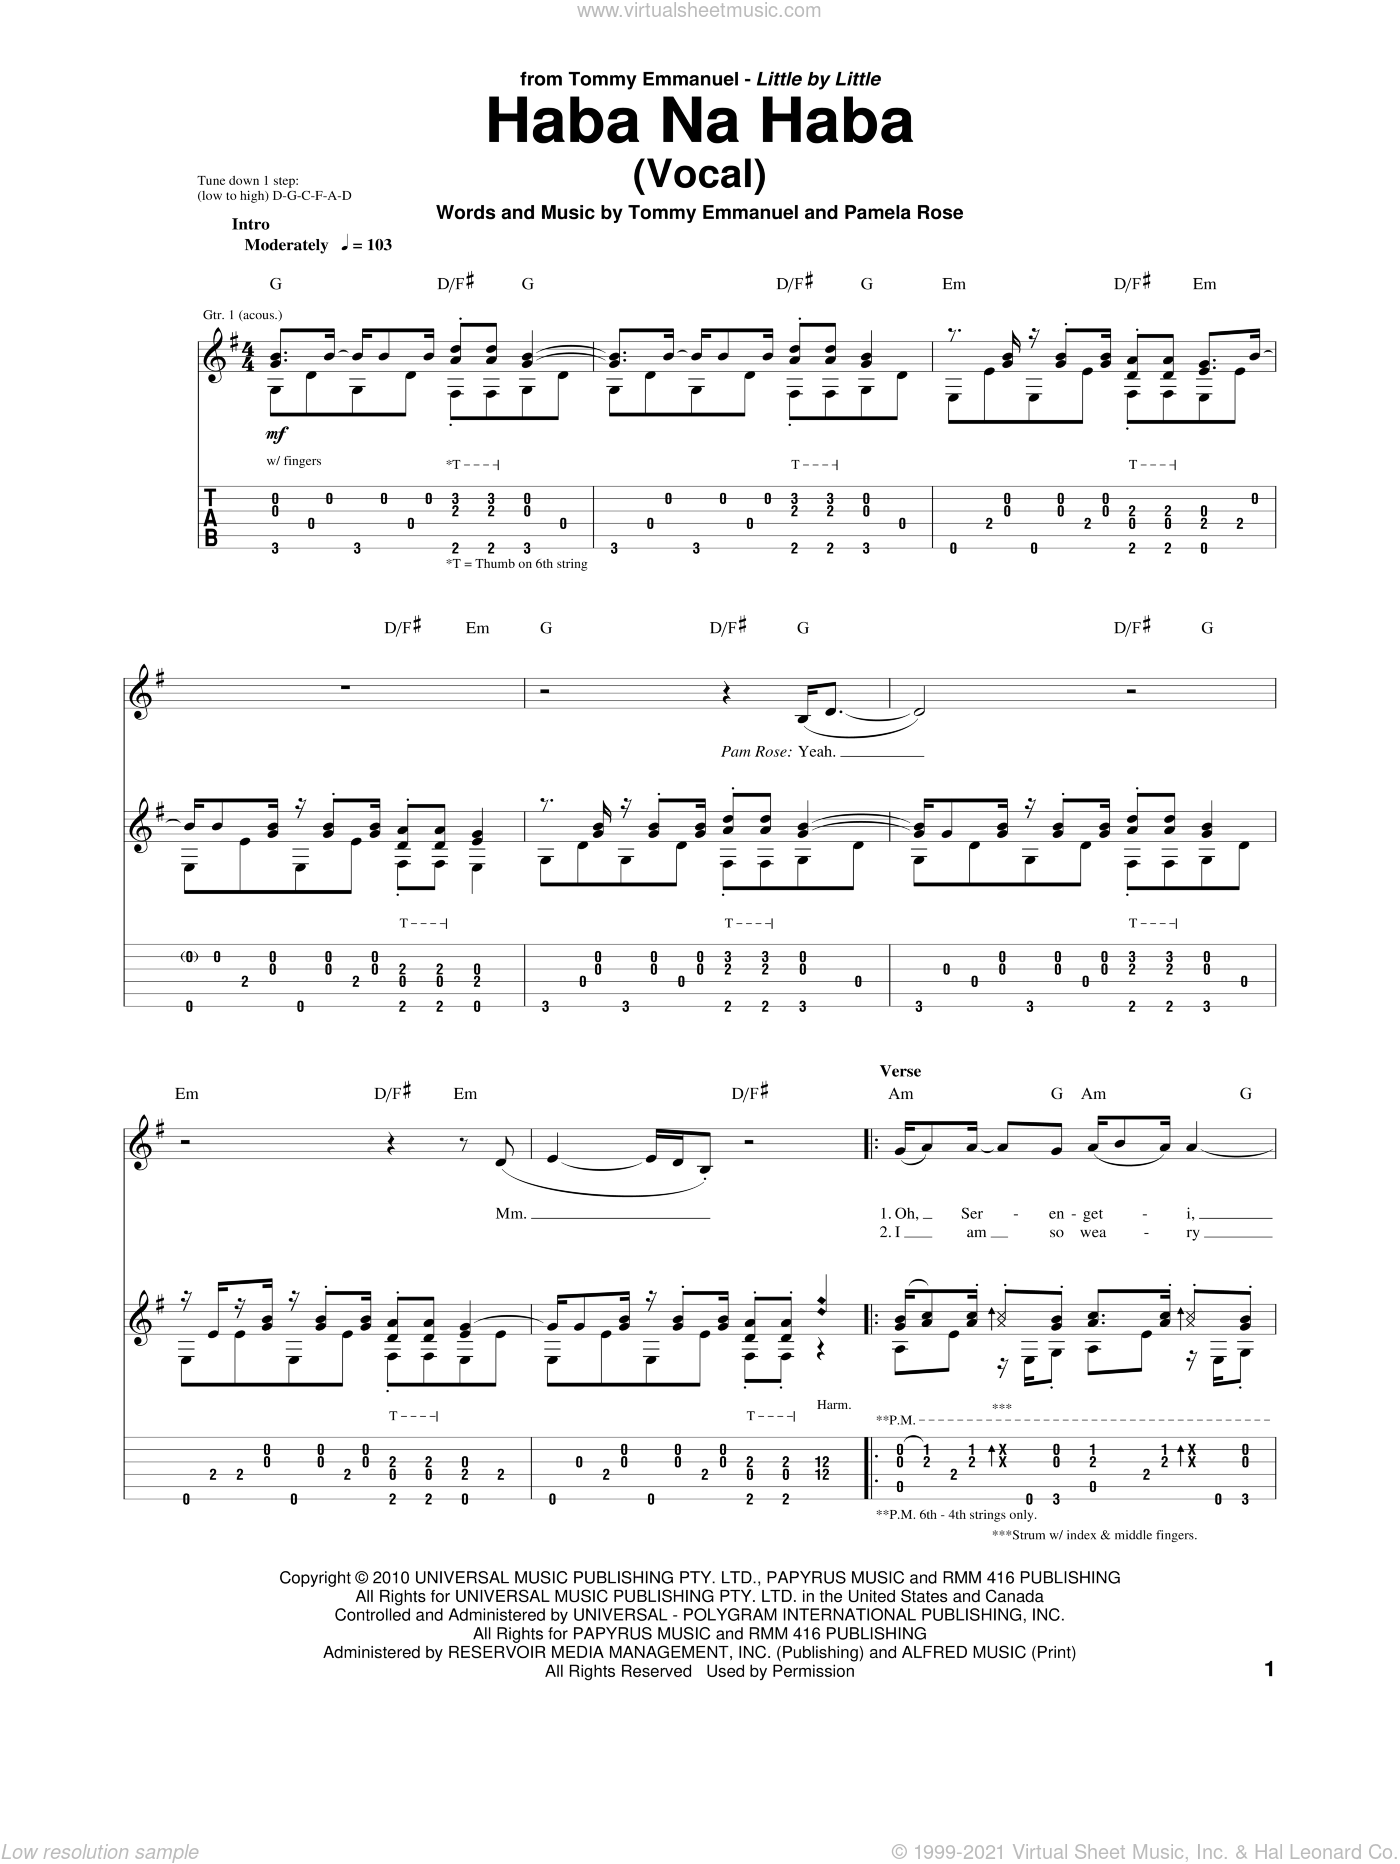 Haba Na Haba sheet music for guitar (tablature) by Tommy Emmanuel and Pamela Rose, intermediate skill level